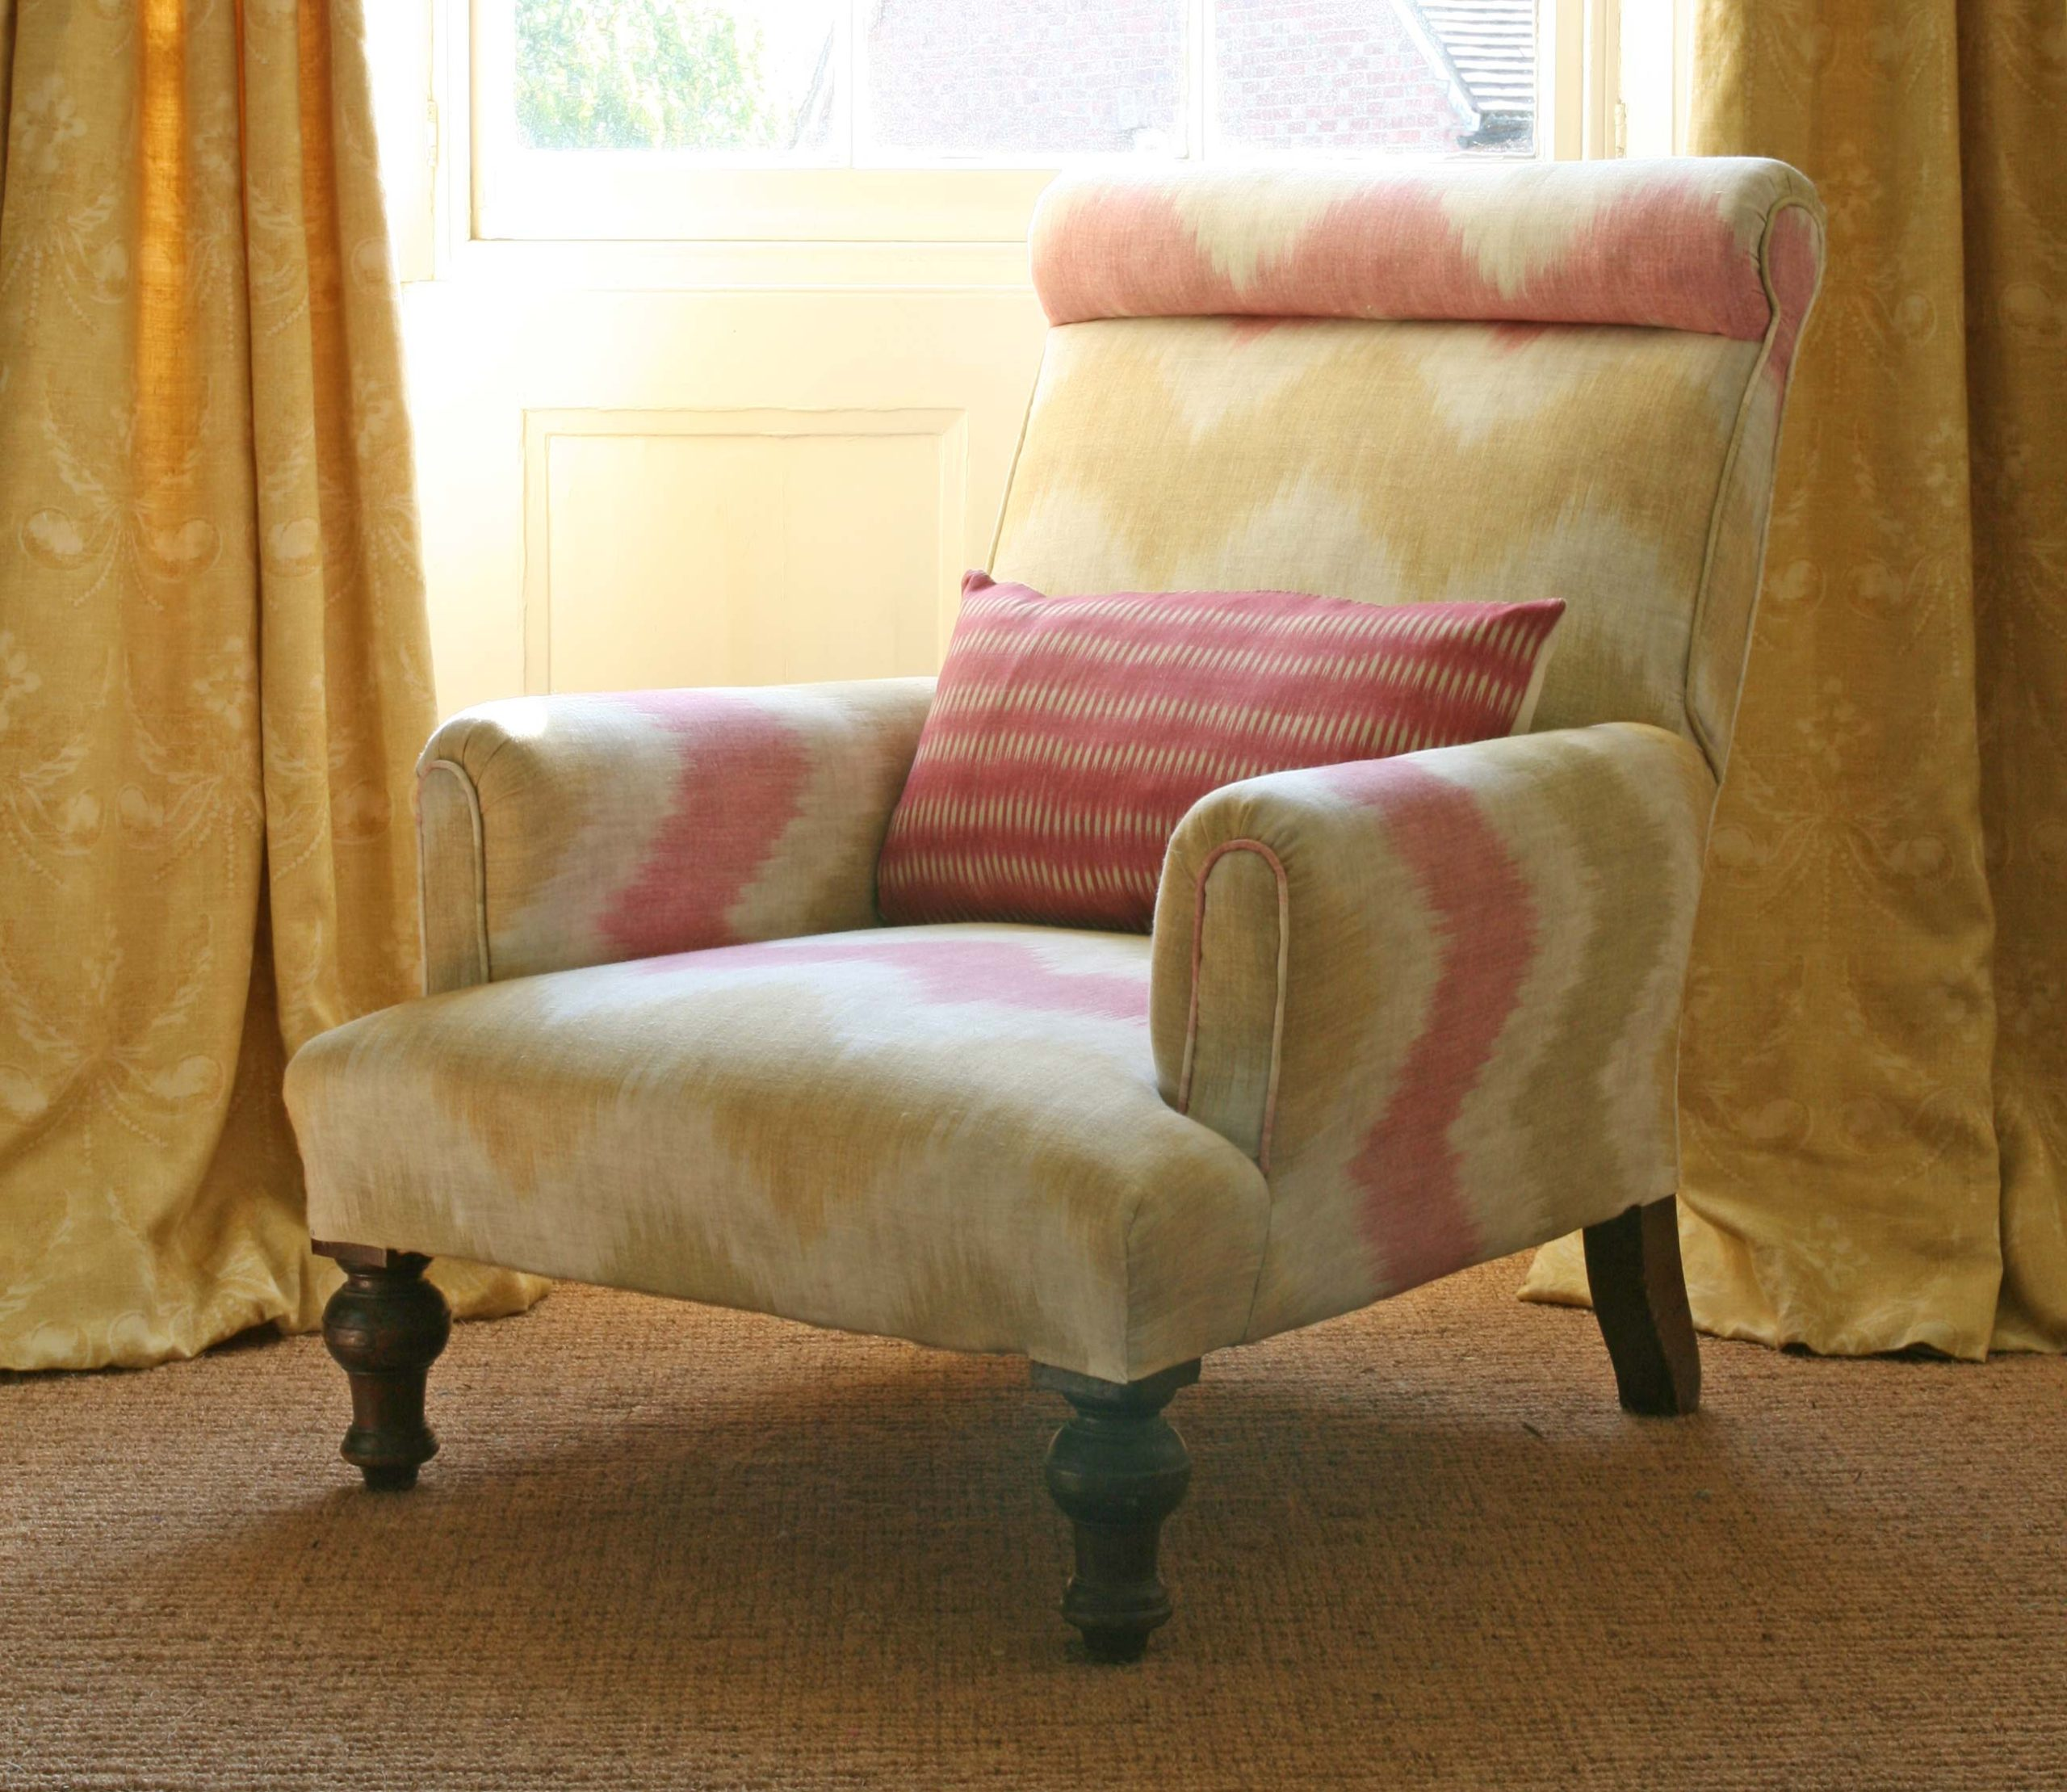 Thea-Yellow-Chair-and-Josephine-Yellow-Curtains